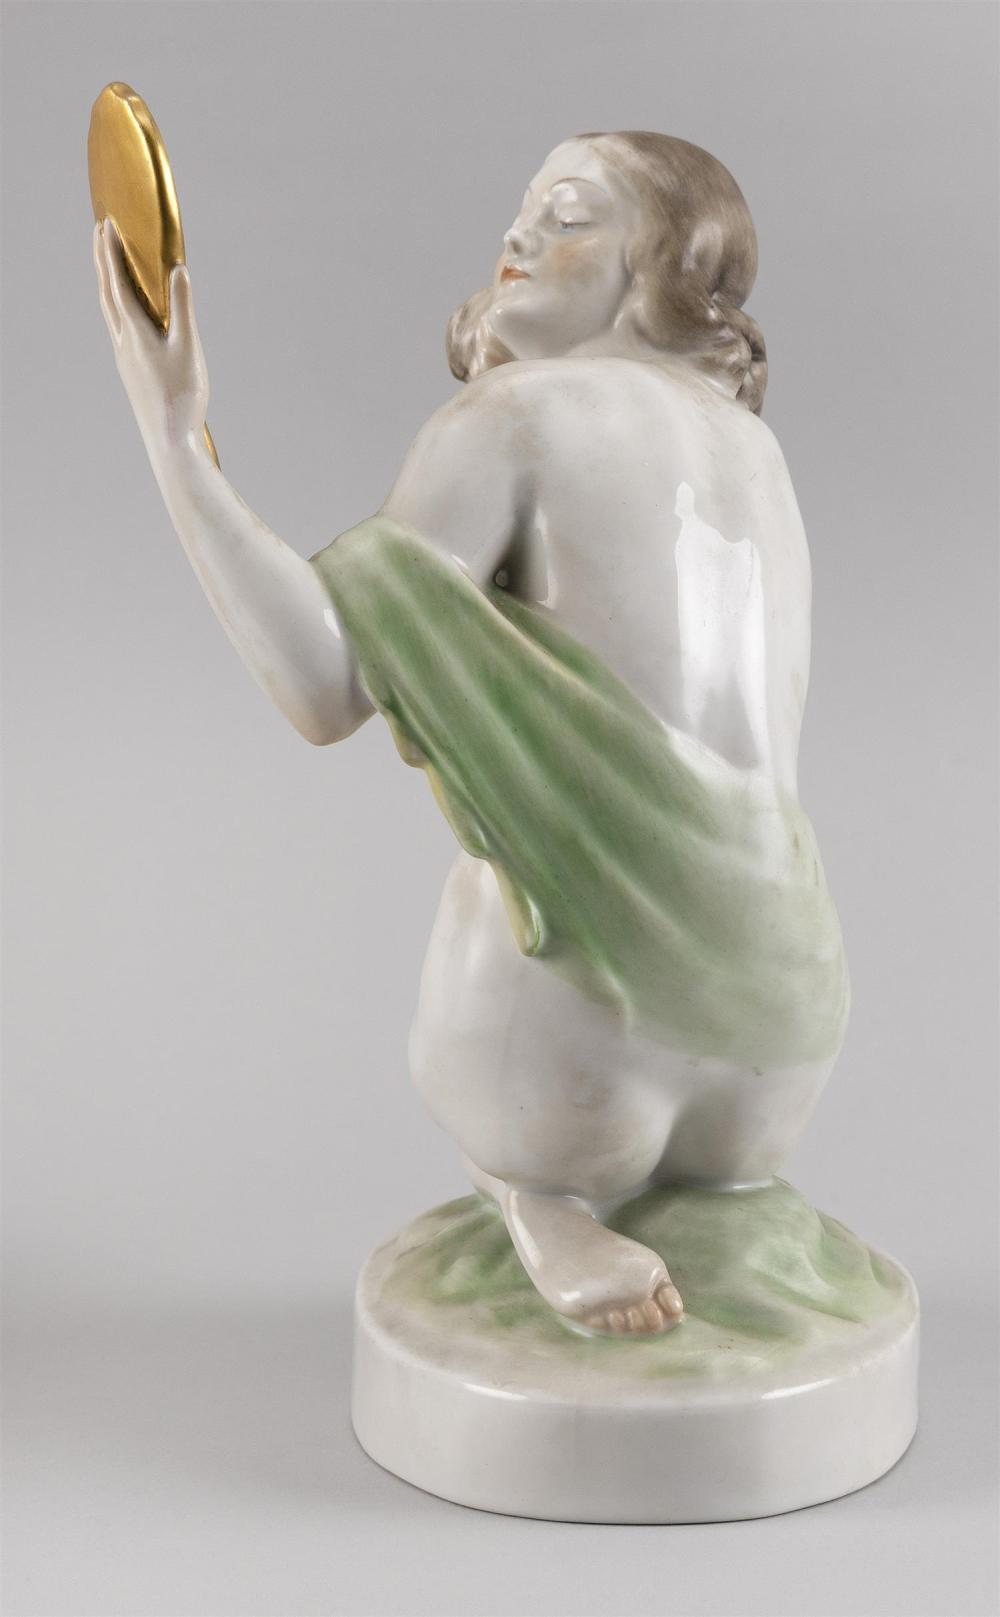 HEREND PORCELAIN FIGURE OF A NUDE WOMAN HOLDING A MIRROR Factory marks and numbered 5724. Height 9.25